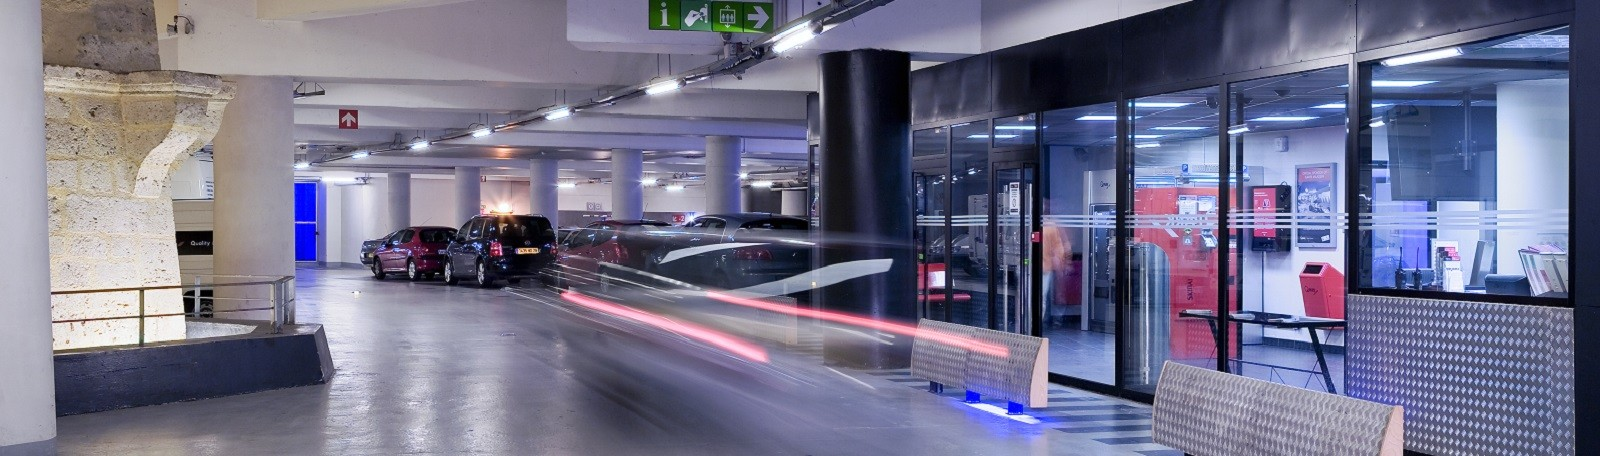 Book a car park or subscription in a few clicks with Q-Park !